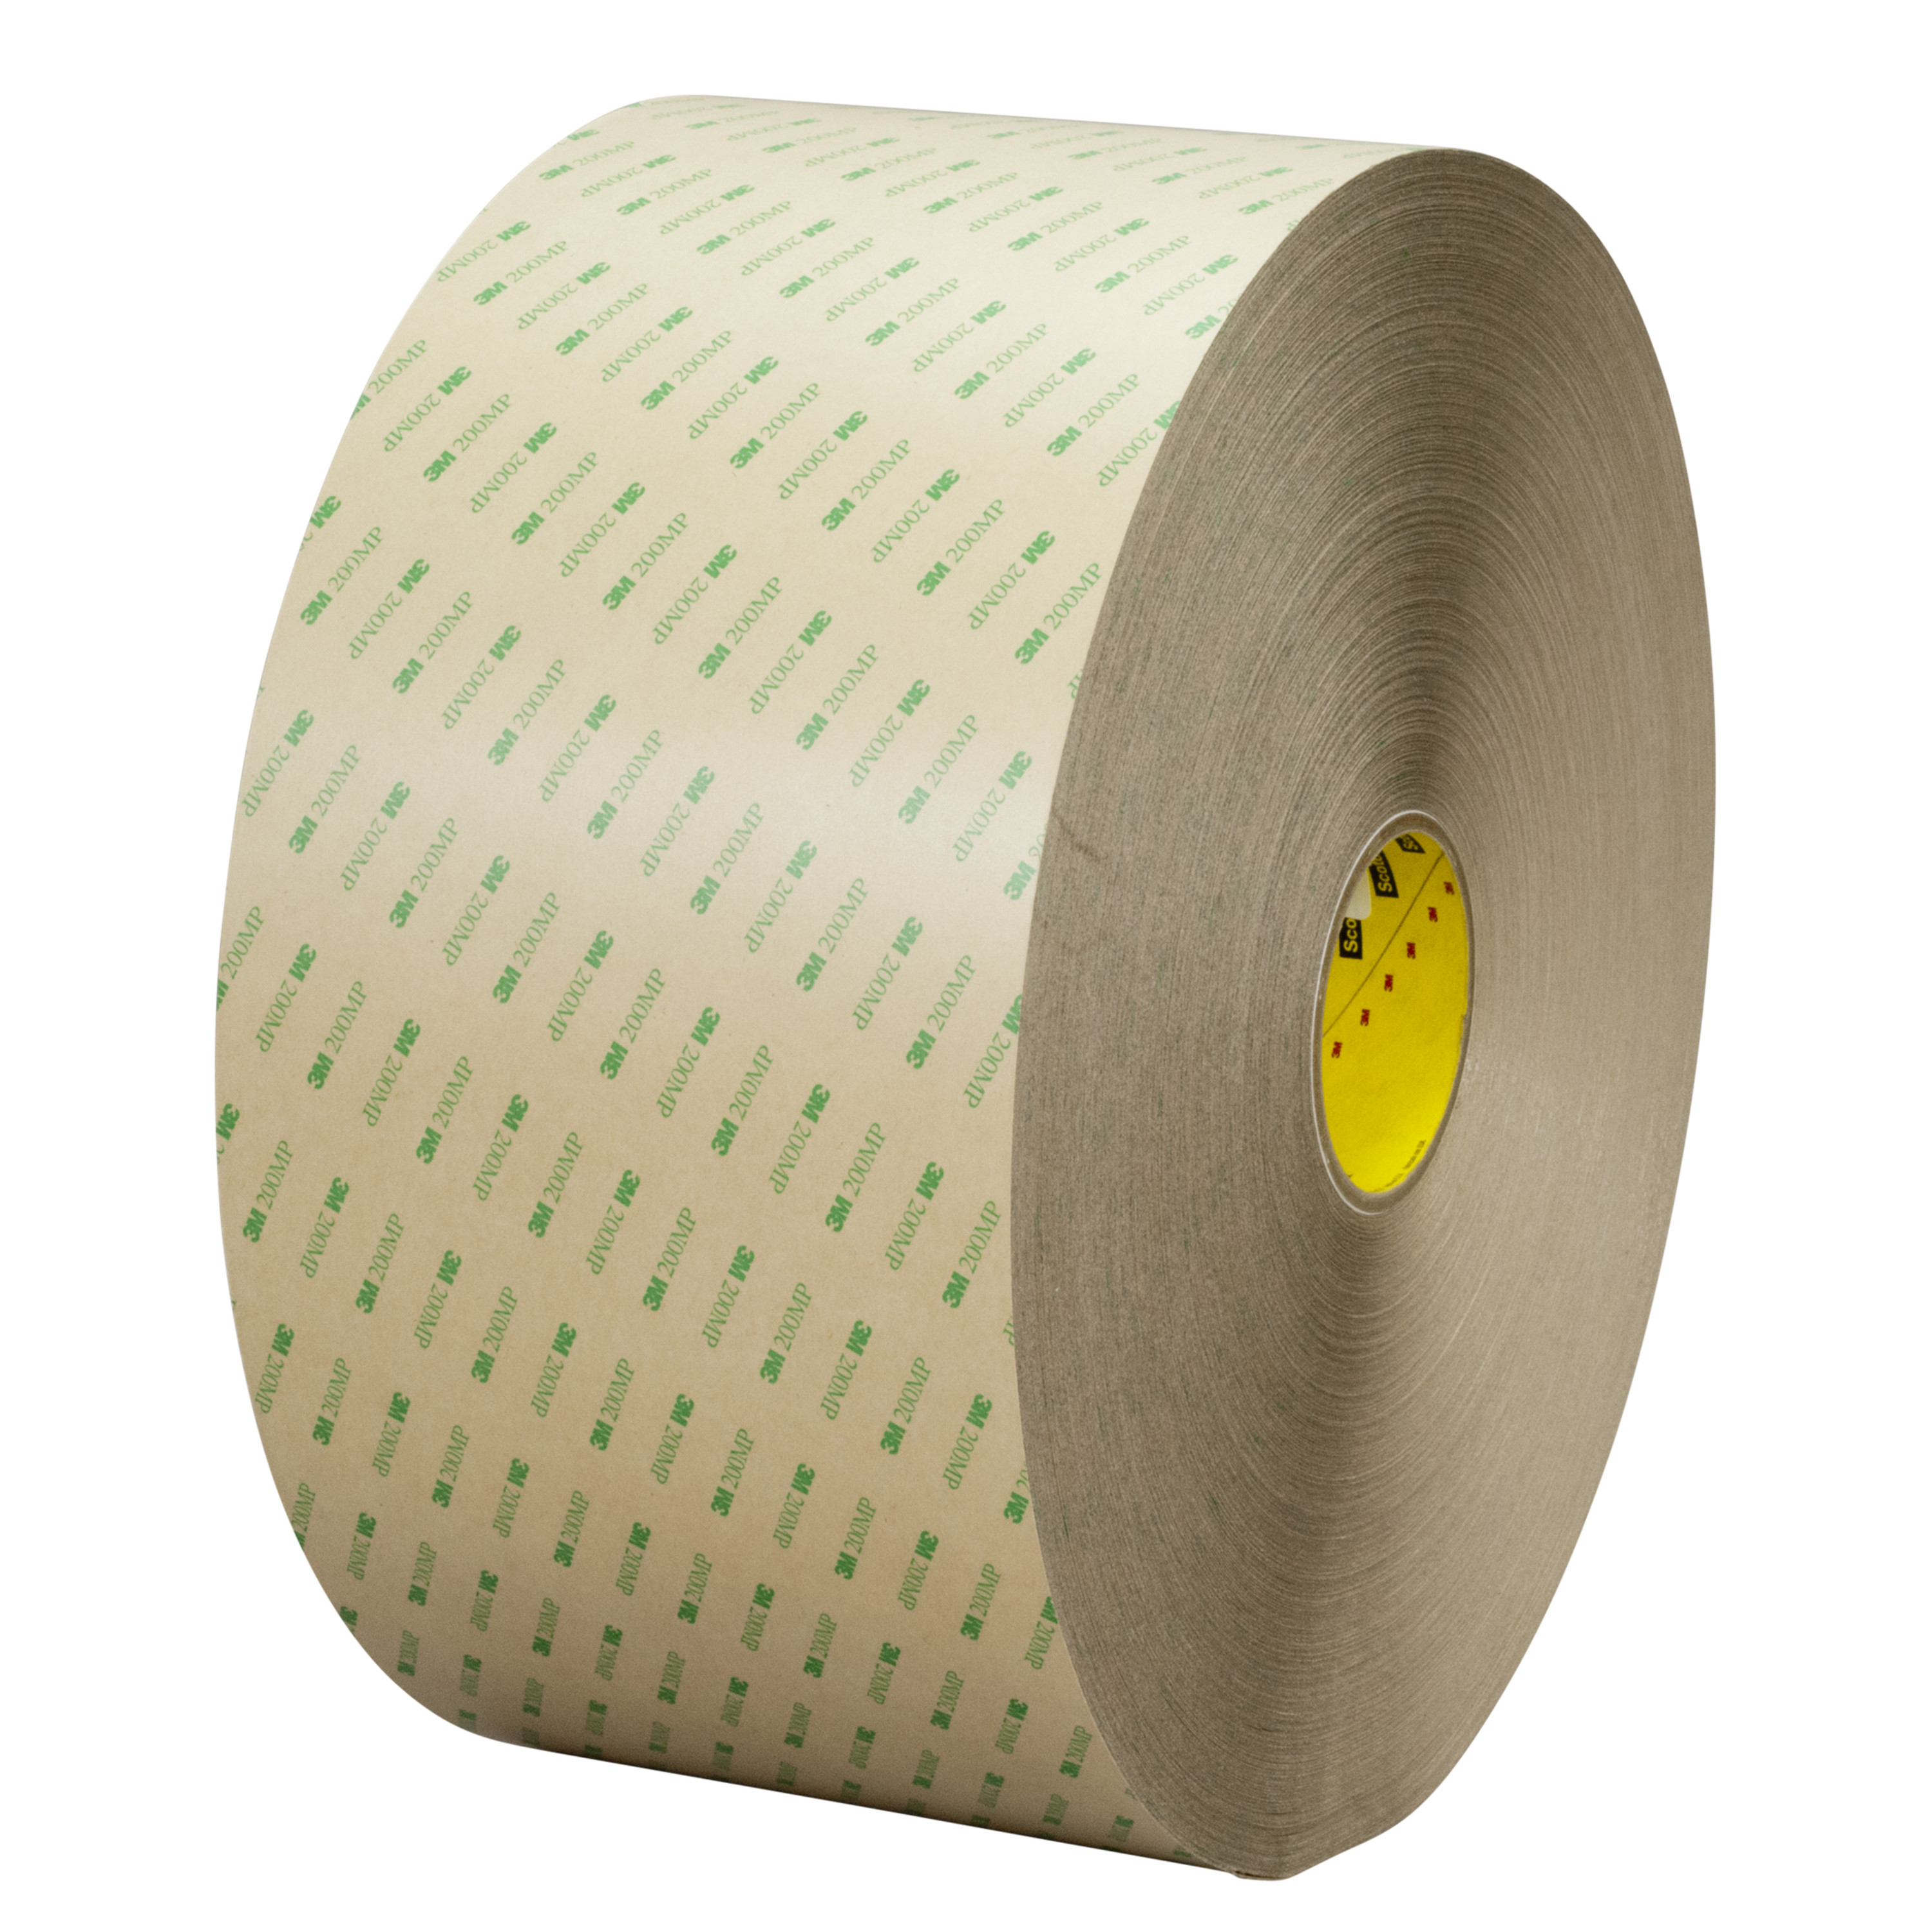 3M™ Adhesive Transfer Tape 9668MP, Clear, 5 mil, Roll, Config